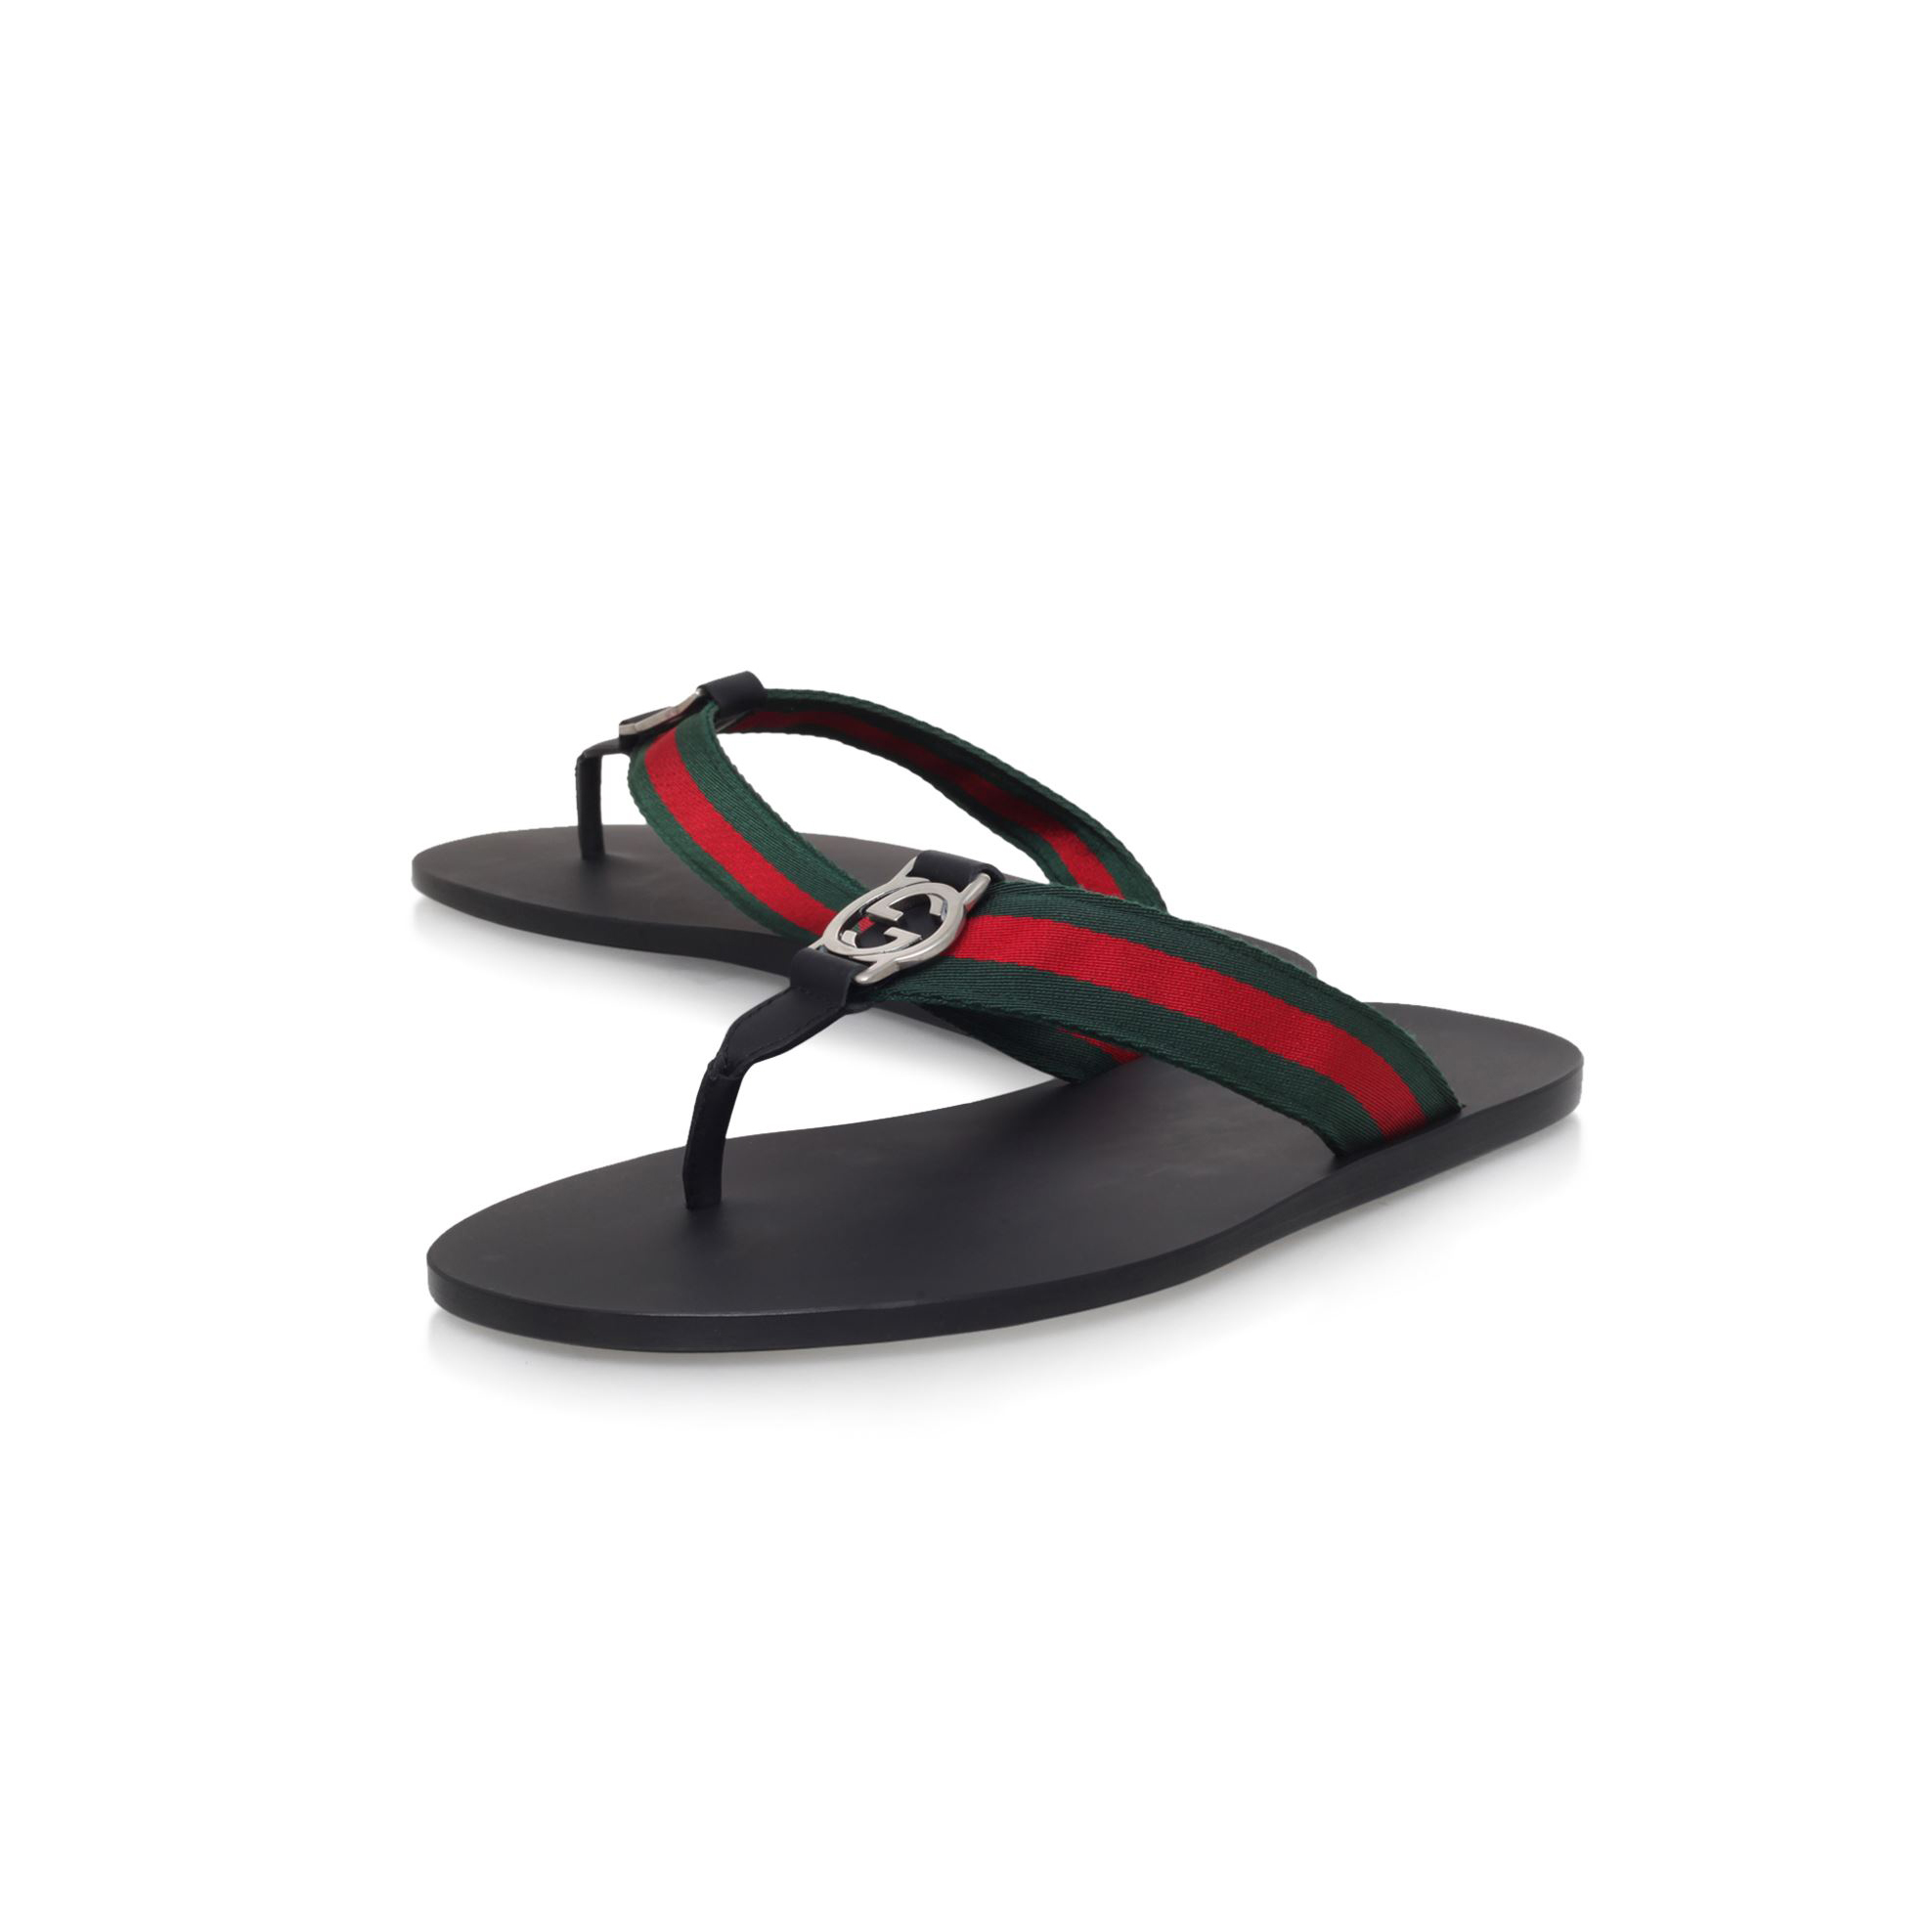 gucci shoes price in indian rupees